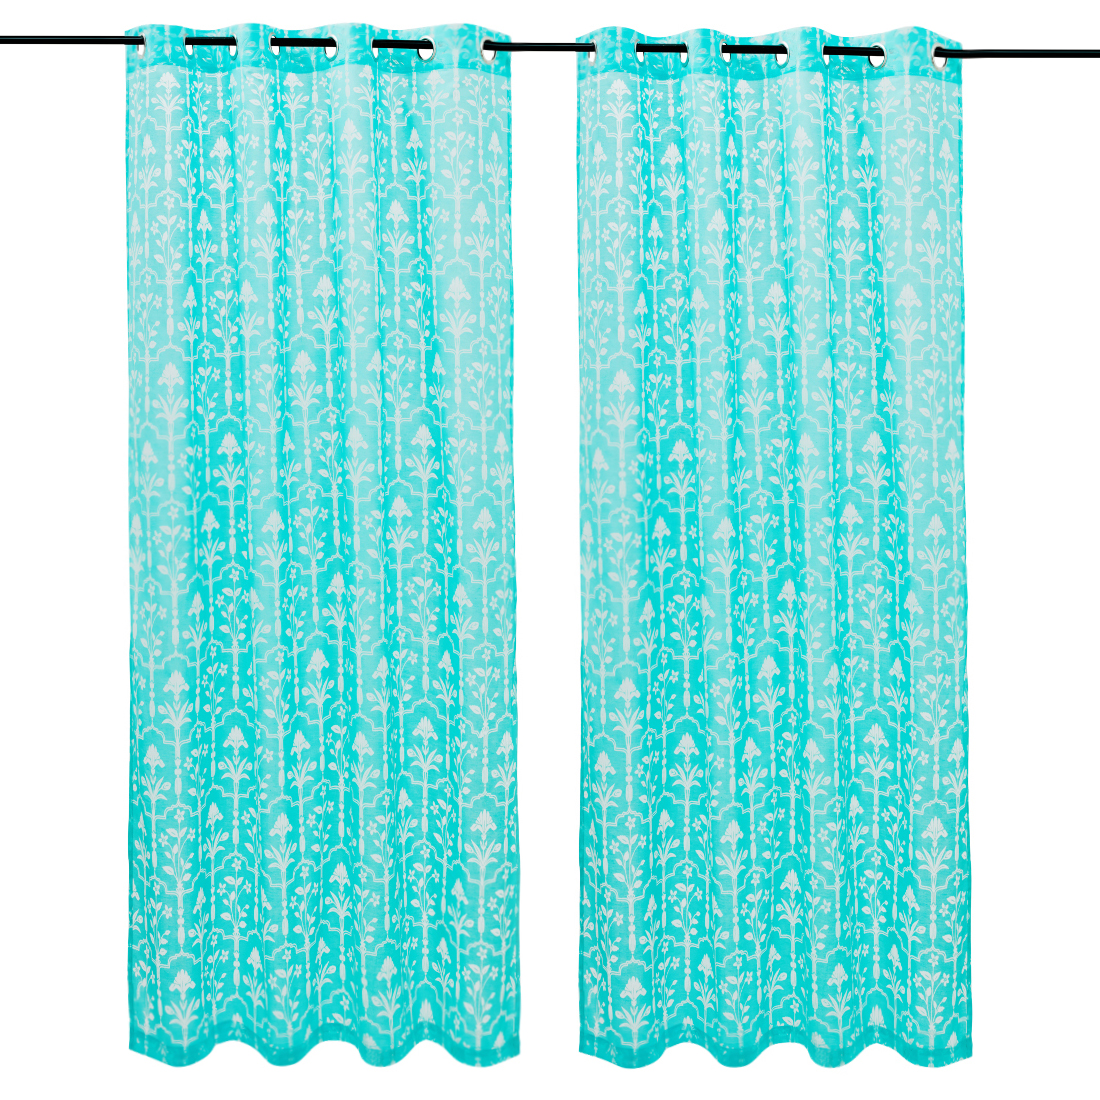 Amour set of 2 Polyester Door Curtains in Turquoise Colour by Living Essence